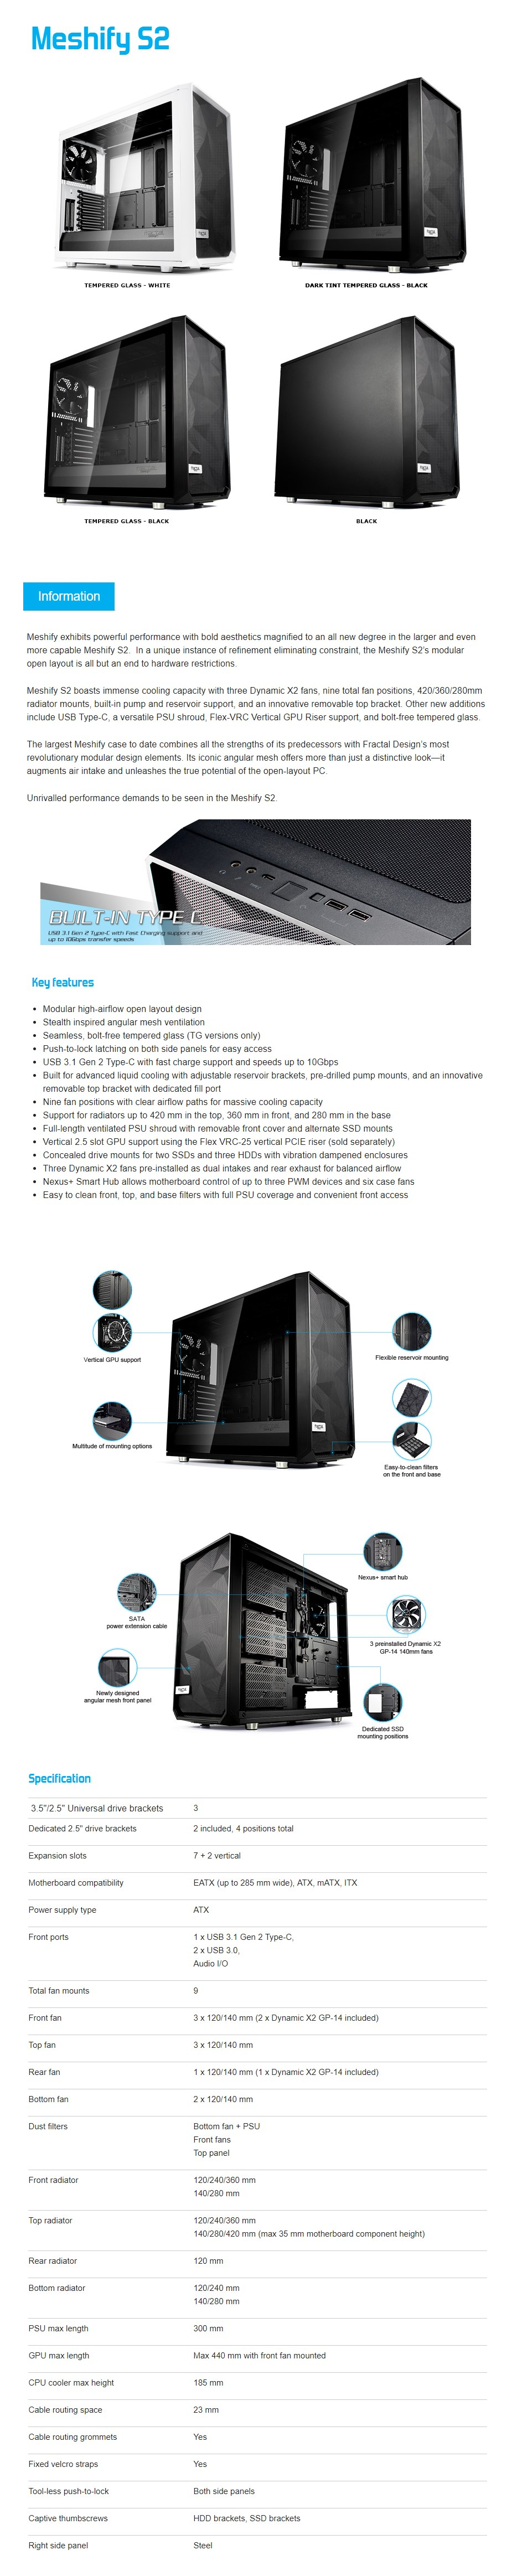 Fractal Design Meshify S2 Tempered Glass USB-C Mid-Tower E-ATX Case - White - Desktop Overview 1